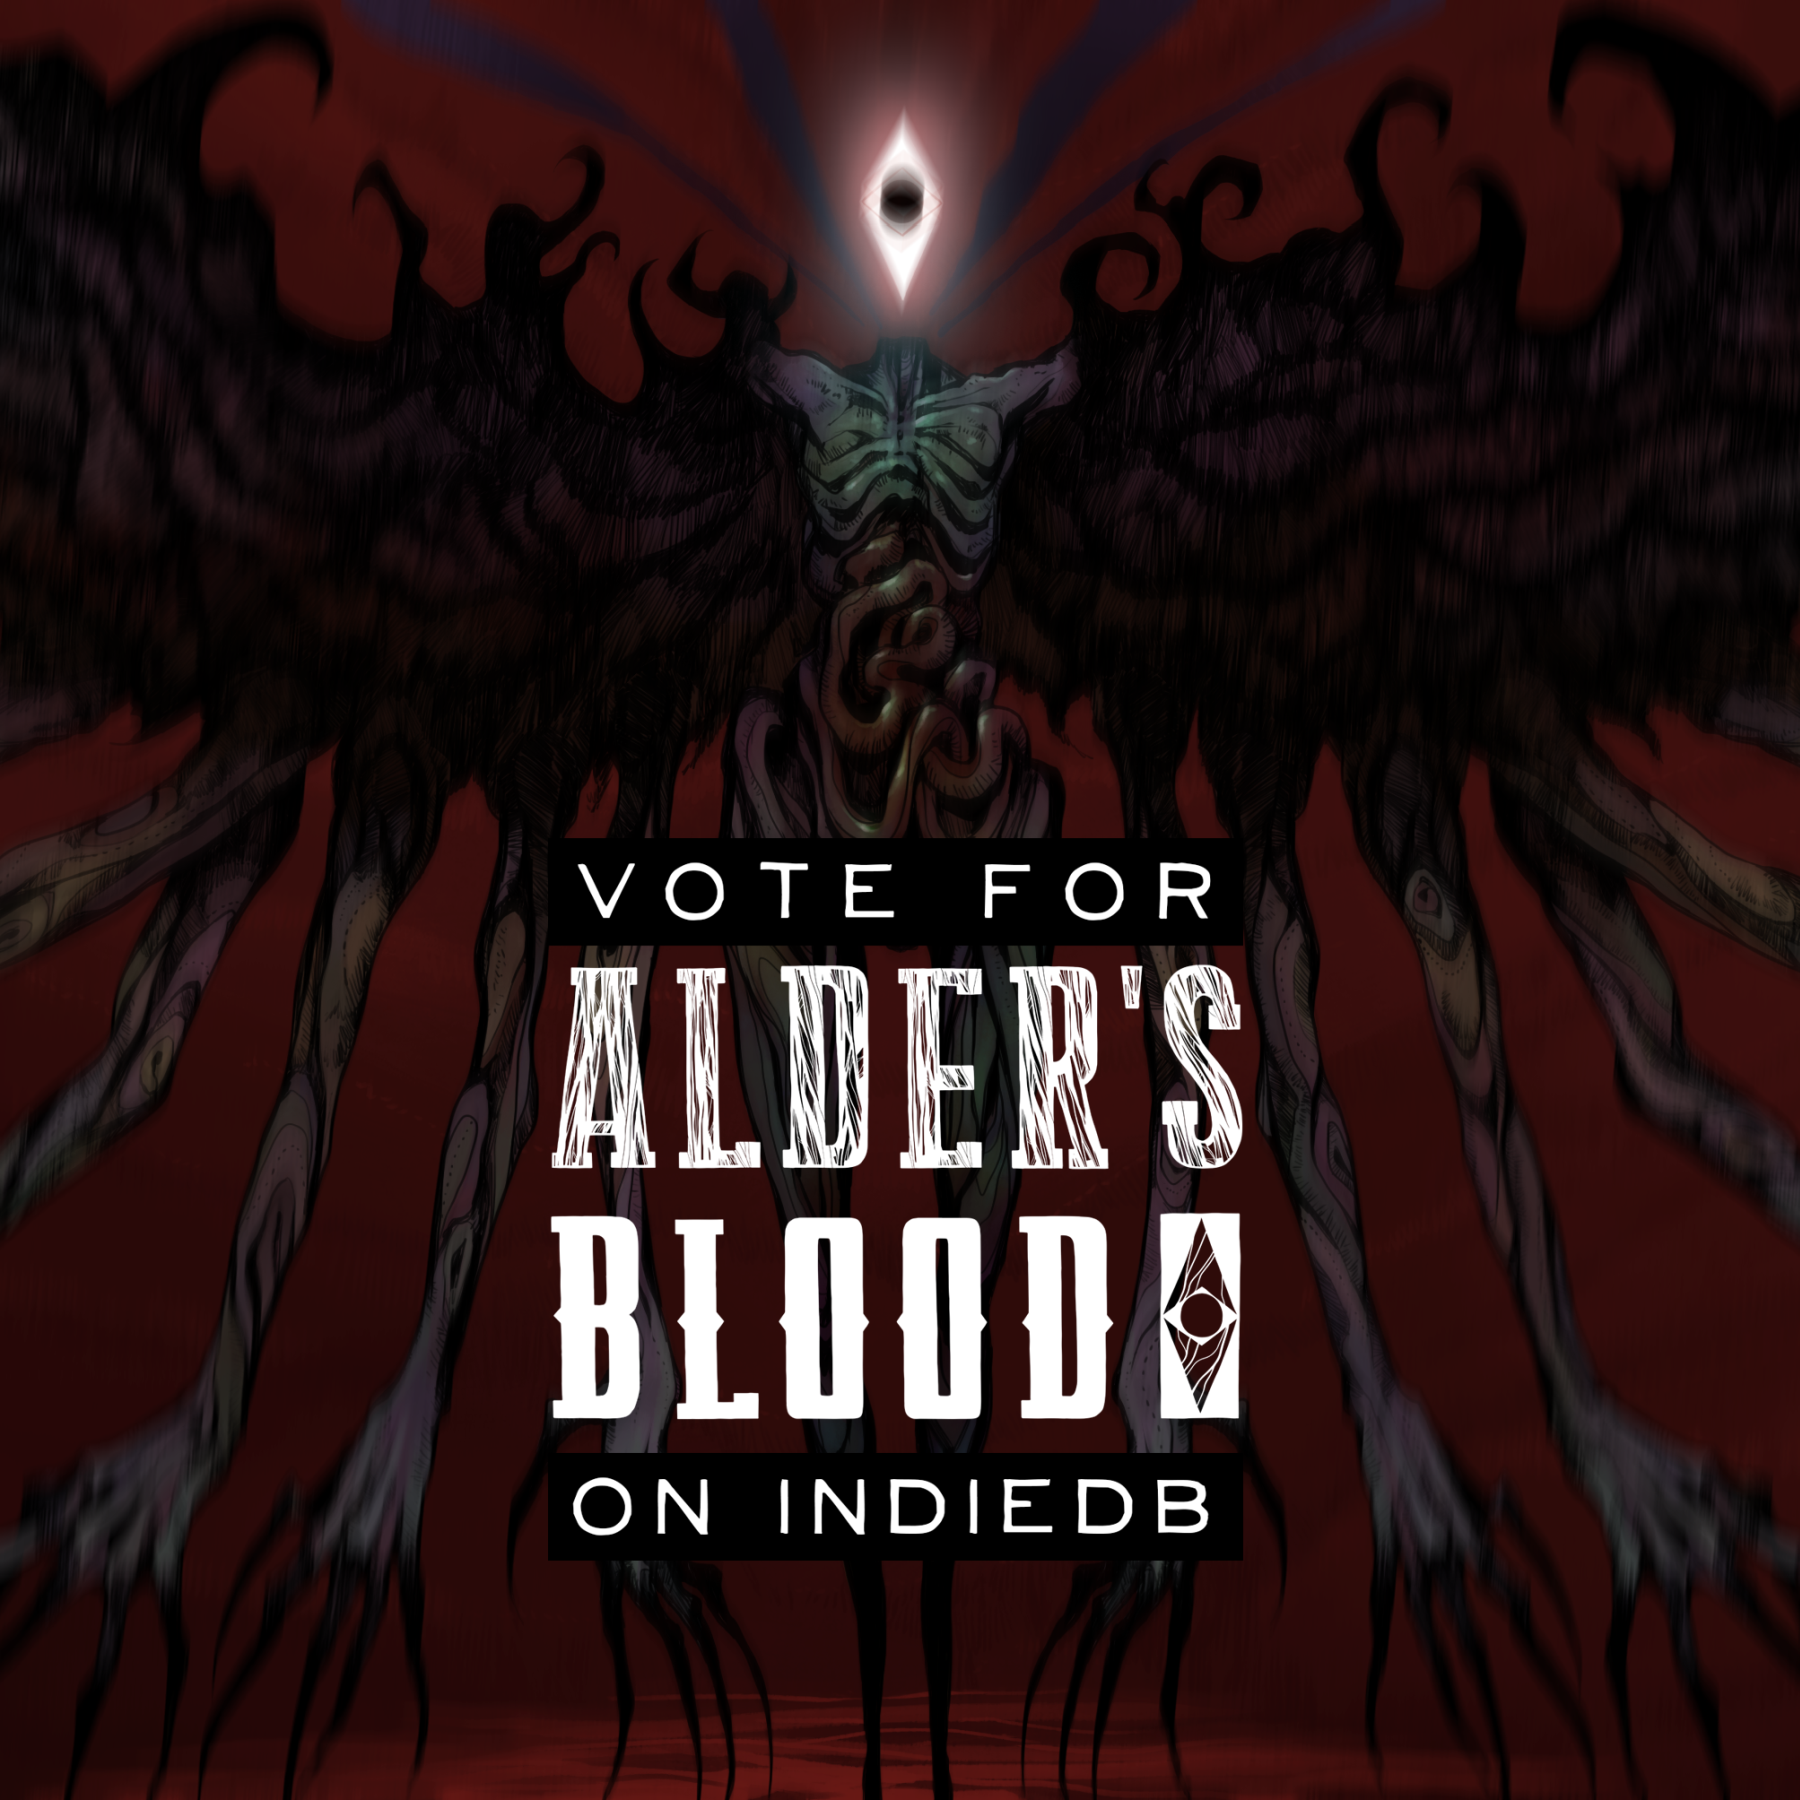 If you like what you see and appreciate our work, please support us by voting for Alder's Blood during the IndieDB competition. Thank you, Hunters!